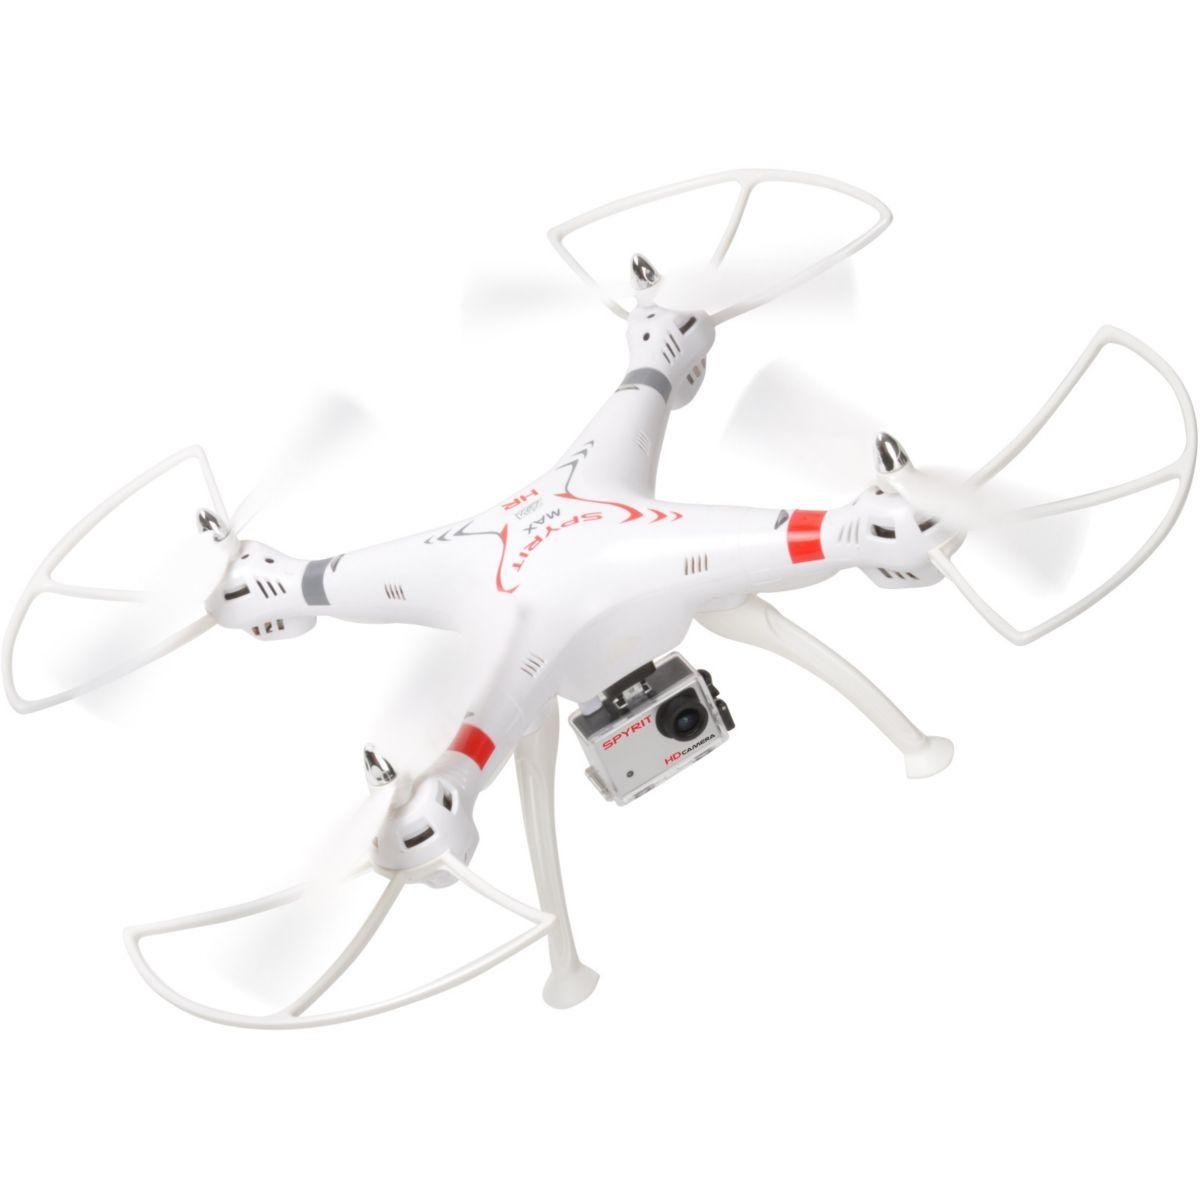 Drone t2m spyrit quadrocopt�re t5174 max hr hd - livraison offerte : code liv (photo)